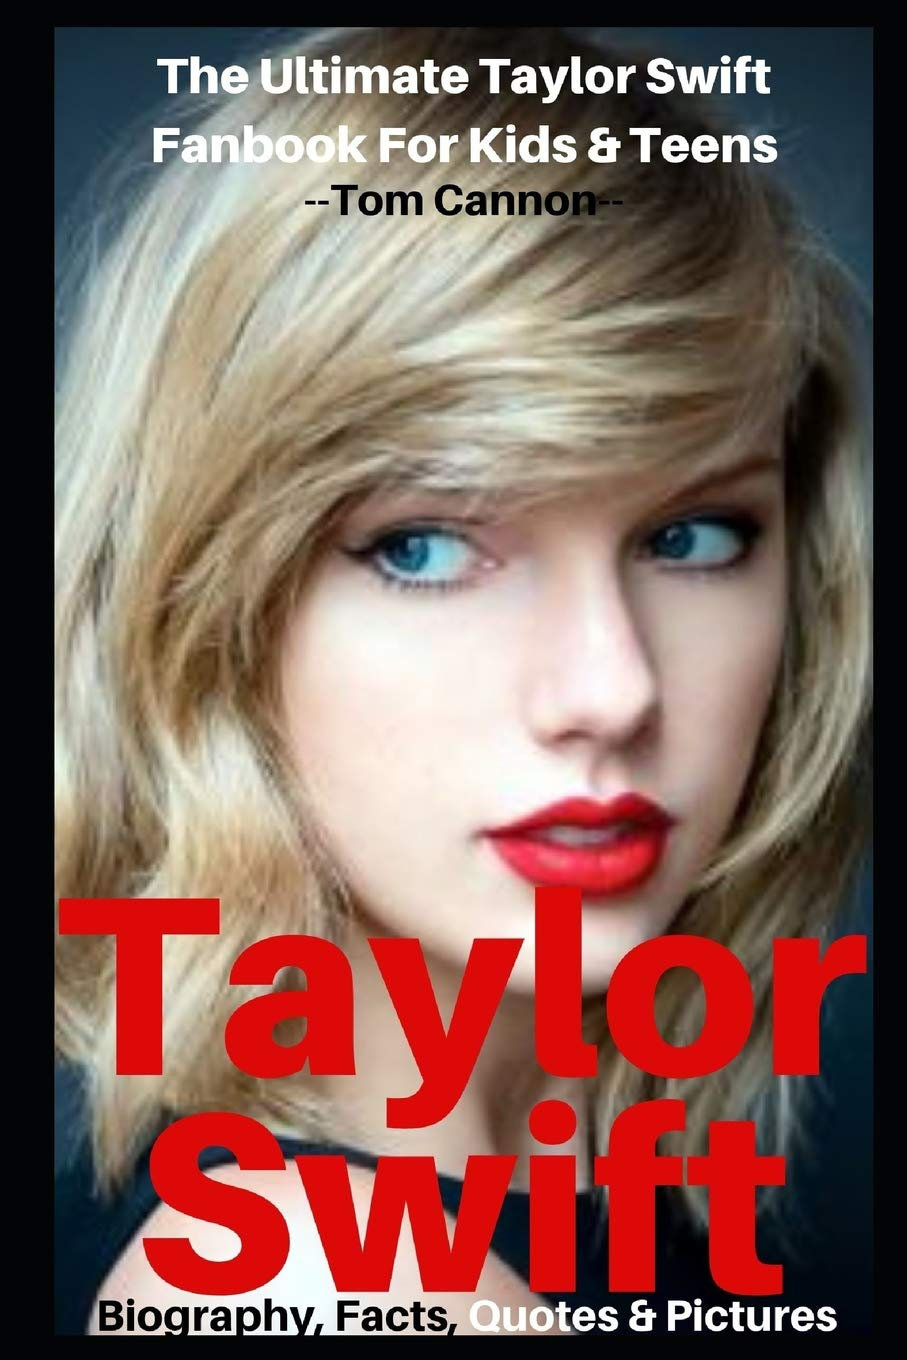 Taylor Swift Biography Facts Quotes And Pictures The Ultimate Taylor Swift Fanbook For Kids Teens I Love My Celeb Cannon Tom 9781072140511 Amazon Com Books